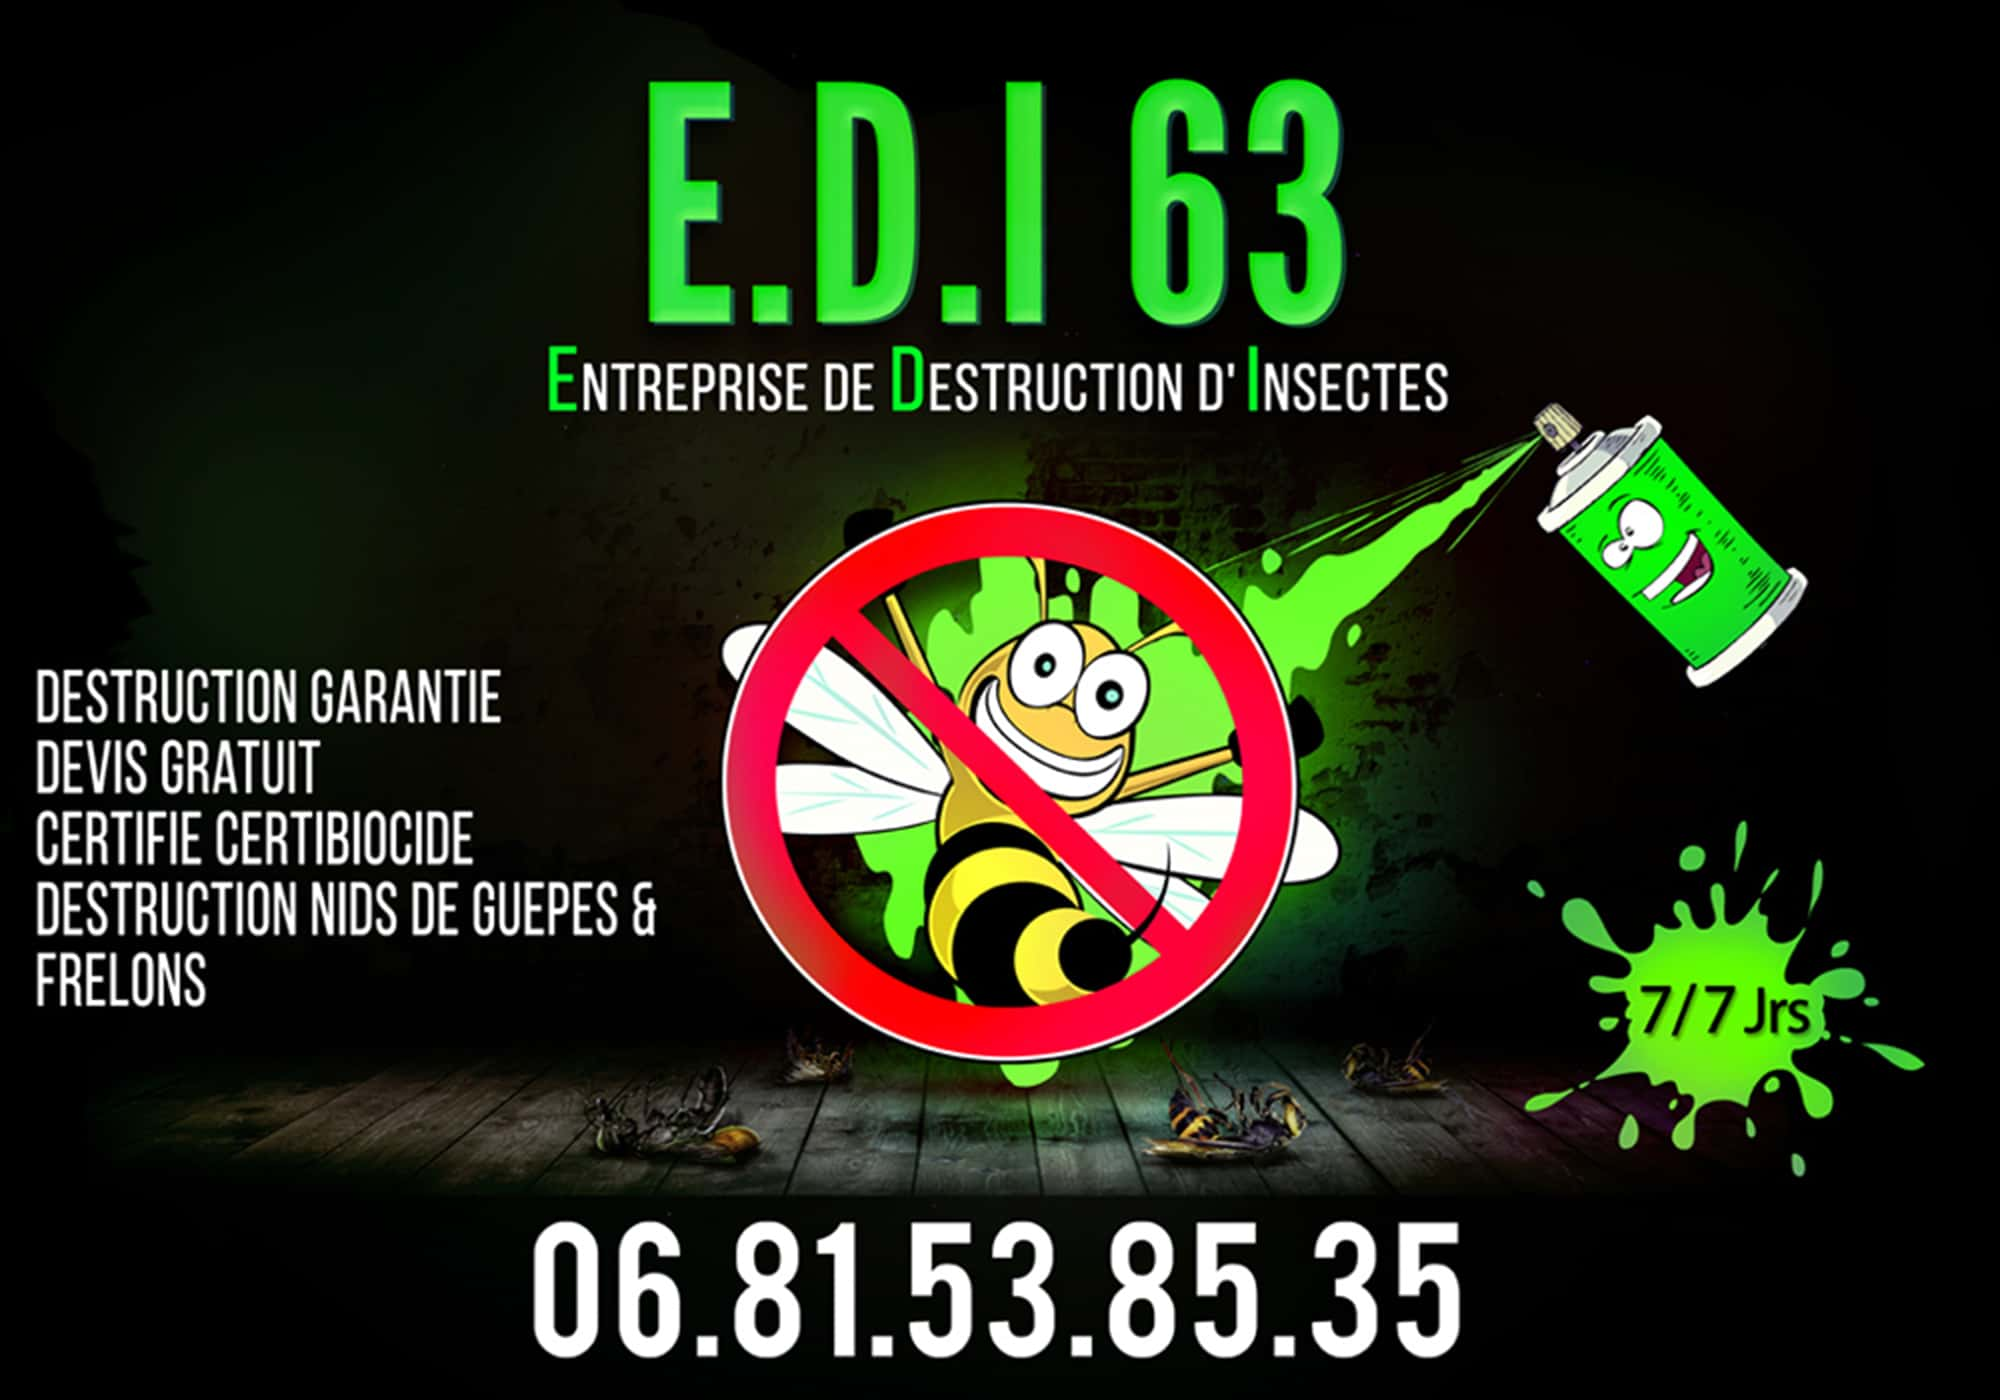 E.D.I 63 - Entreprise de destruction d'insectes